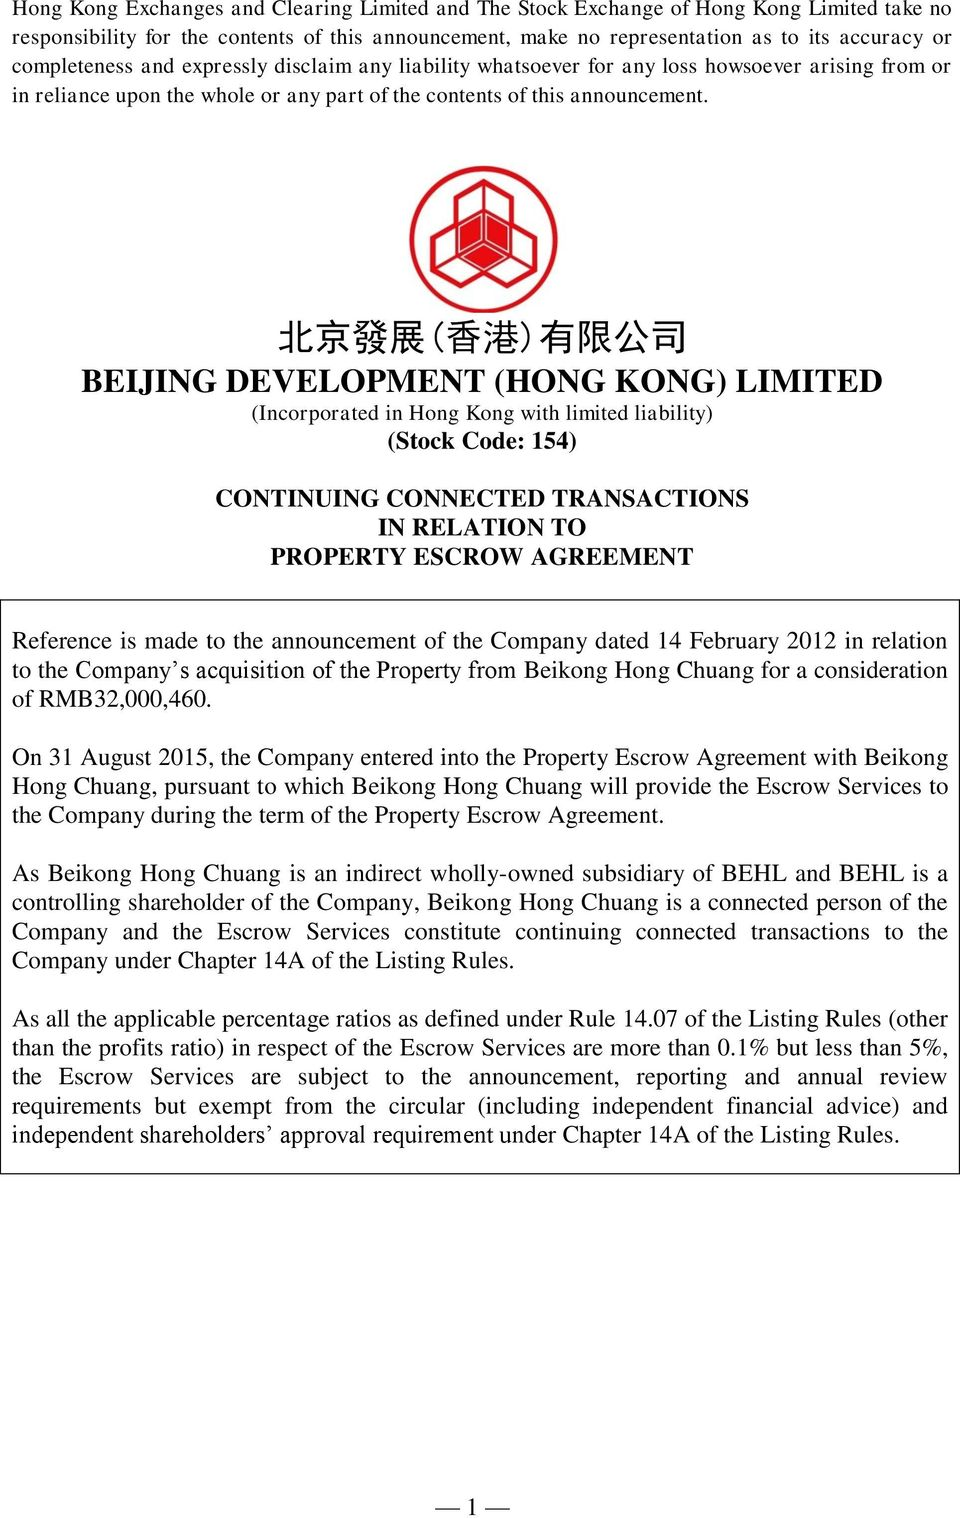 北 京 發 展 ( 香 港 ) 有 限 公 司 BEIJING DEVELOPMENT (HONG KONG) LIMITED (Incorporated in Hong Kong with limited liability) (Stock Code: 154) CONTINUING CONNECTED TRANSACTIONS IN RELATION TO PROPERTY ESCROW